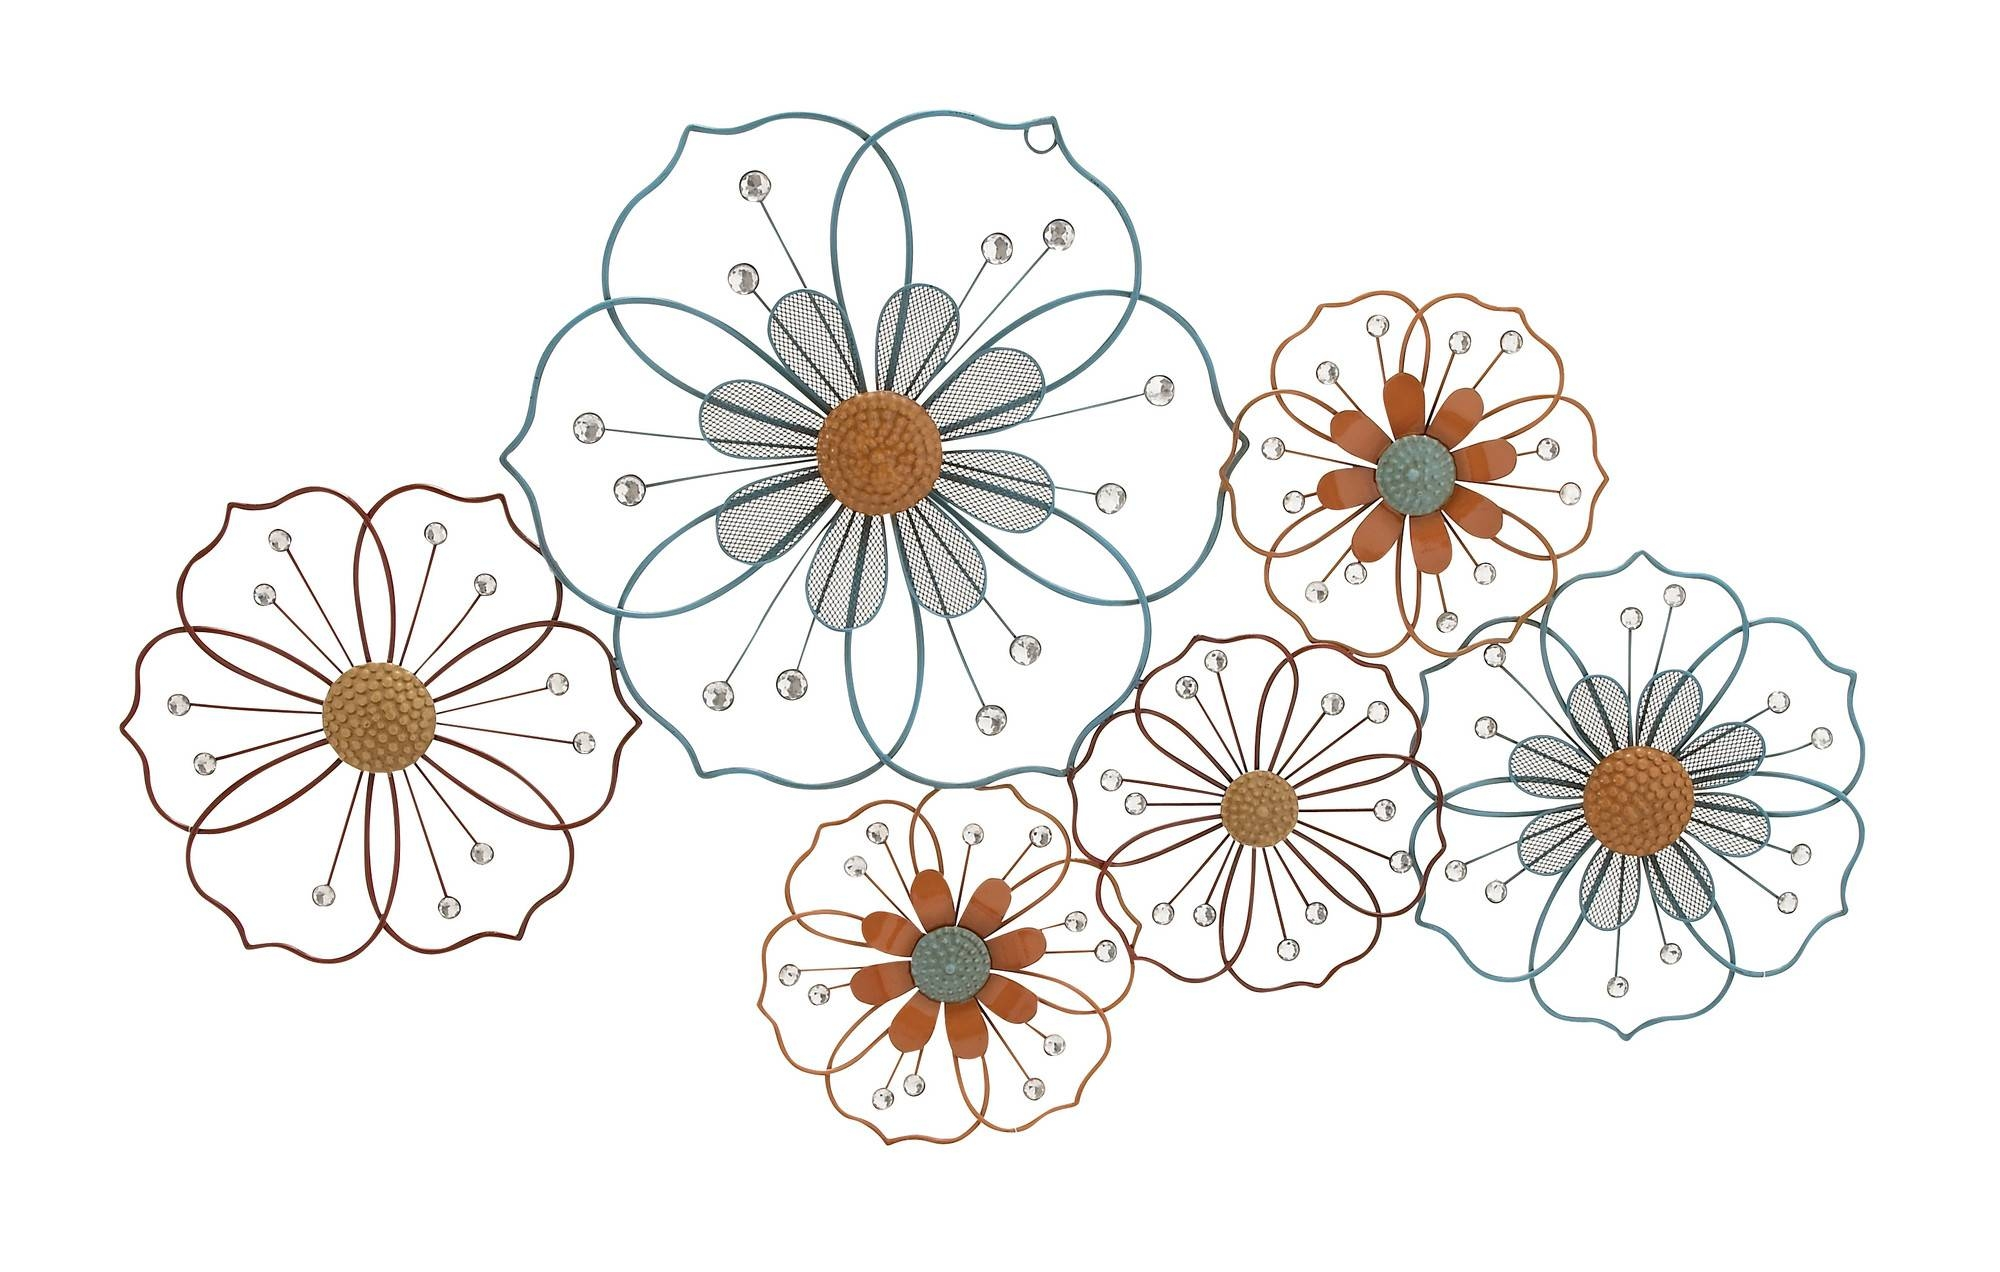 Large Flower Silhouettes – Floral Metal Wall Art Inside Latest Metal Wall Art Flowers (Gallery 7 of 20)